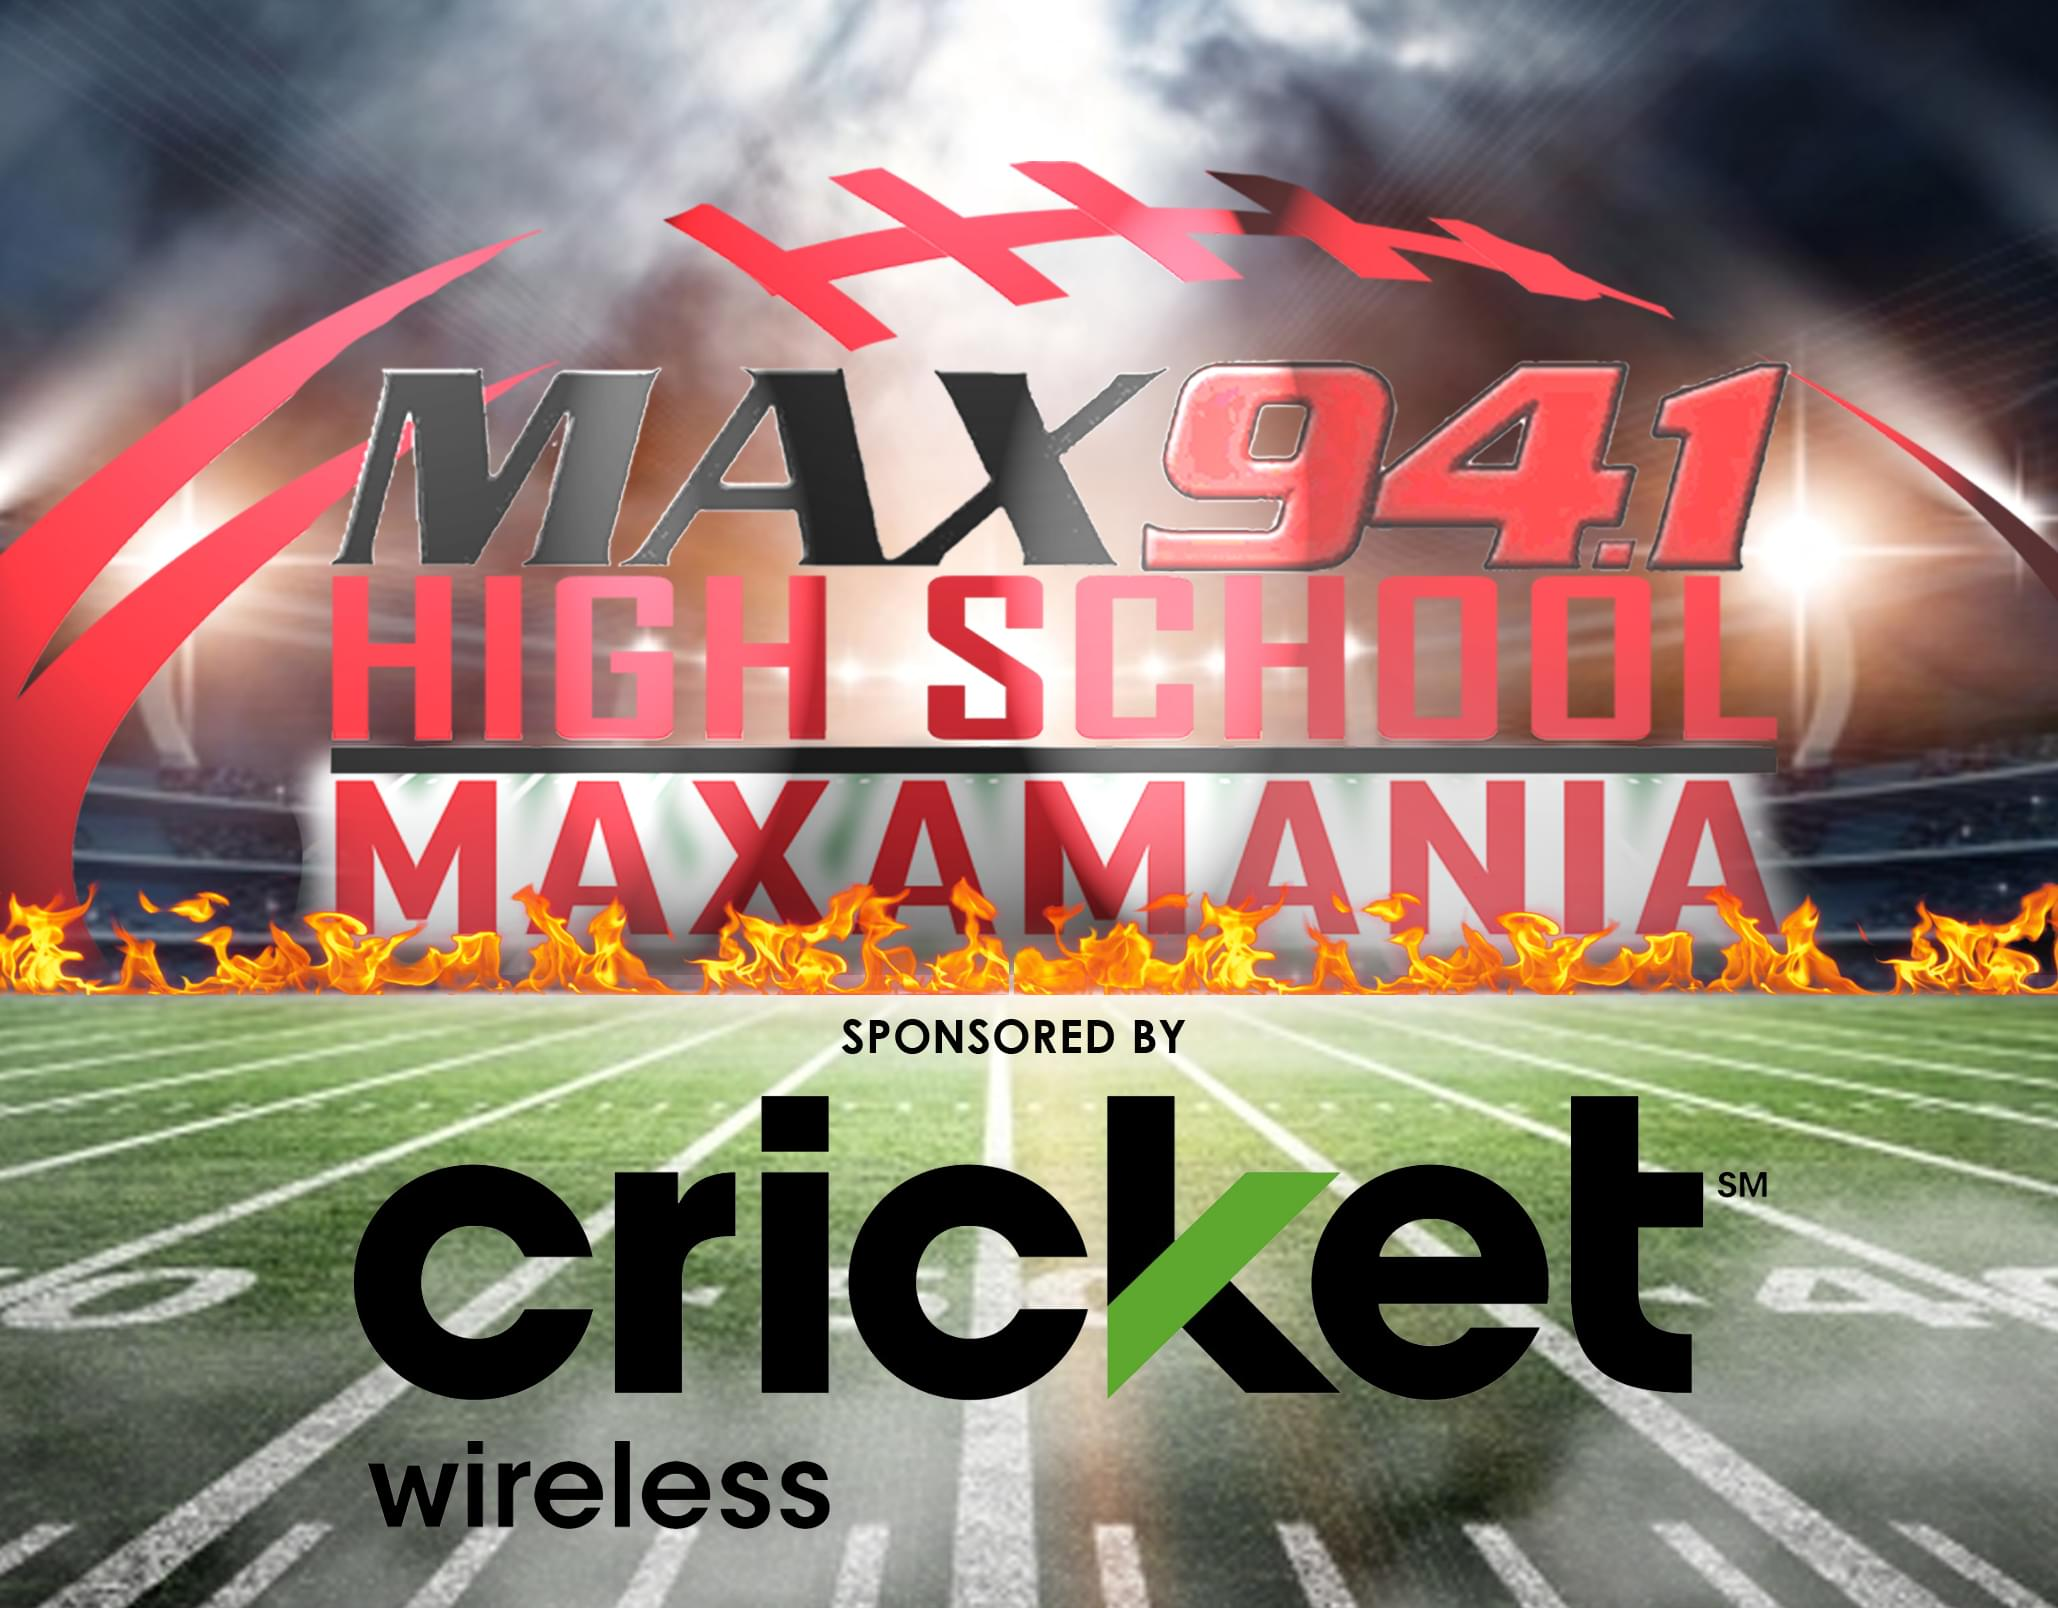 Max 94.1 High School Maxamania! Presented by Cricket Wireless